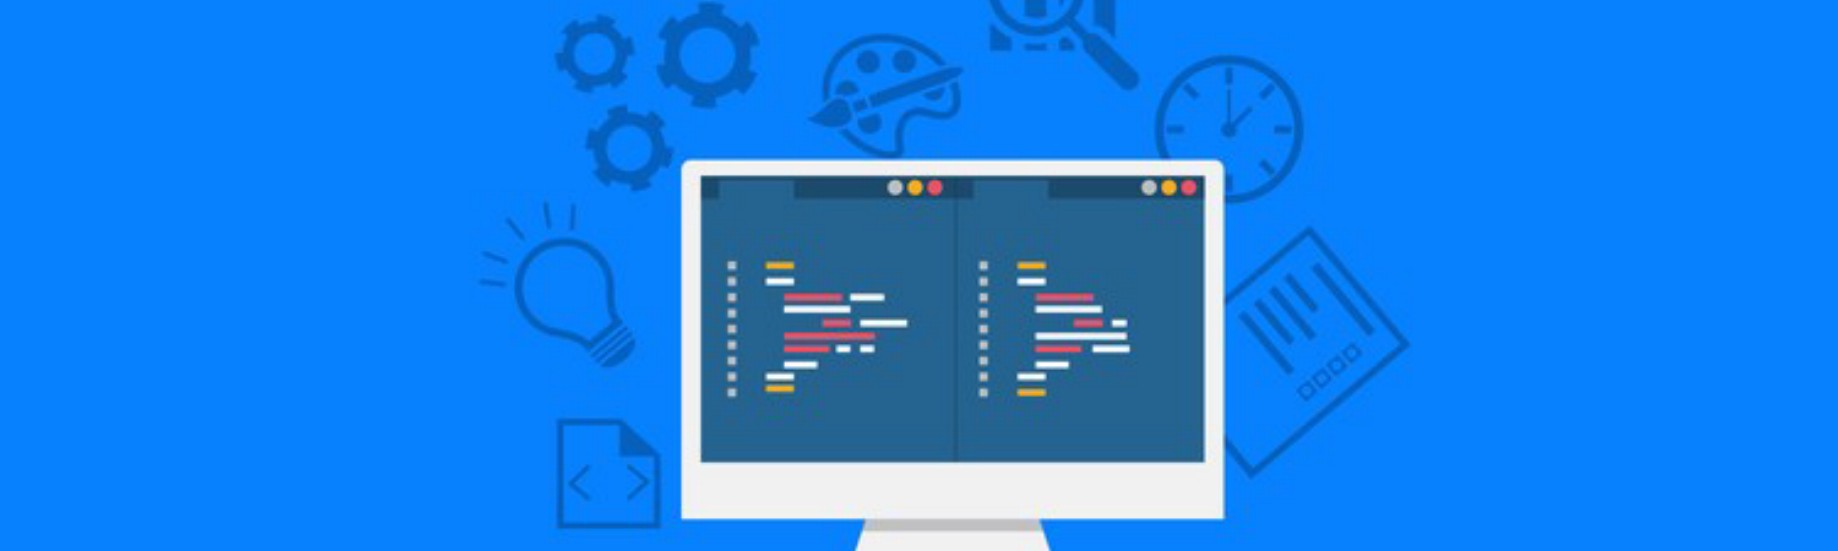 Learn to code in 2018, get hired, and have fun along the way